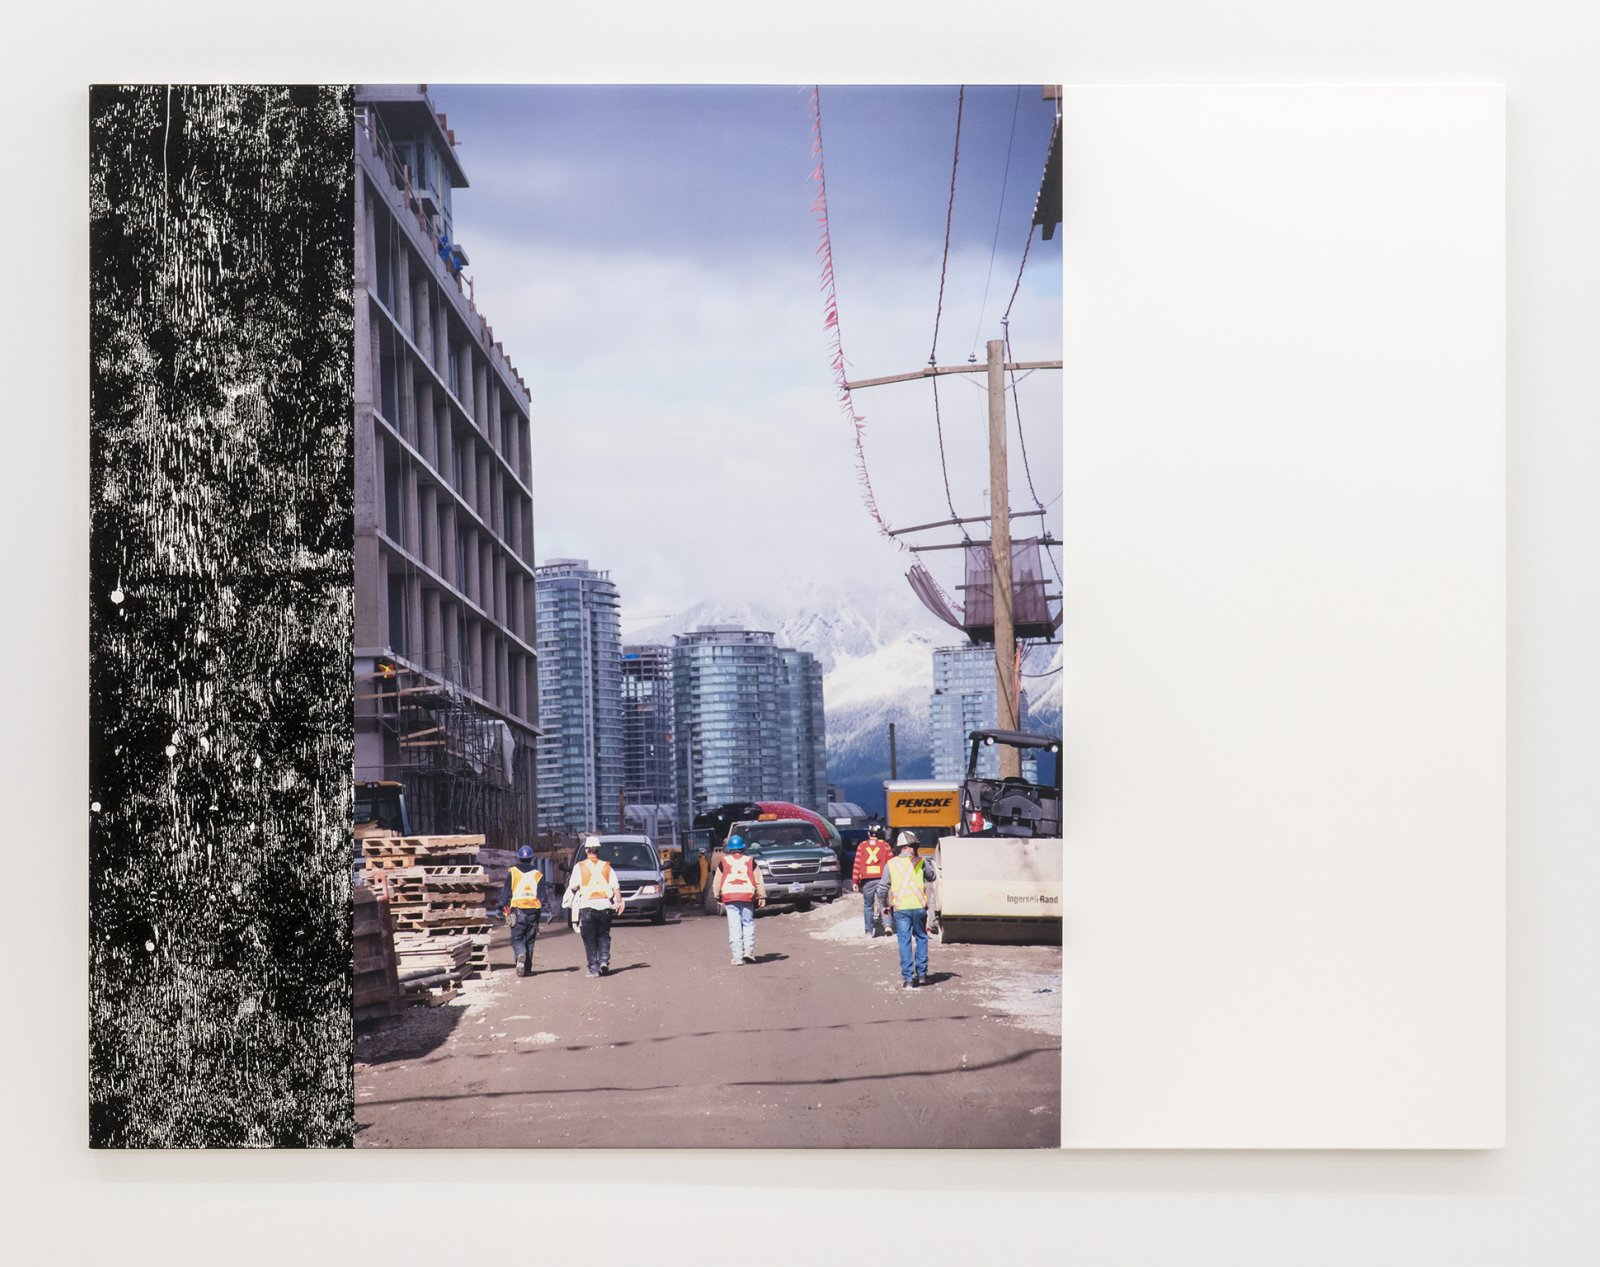 Ian Wallace, Construction Site (Olympic Village) IV, 2011, photolaminate and acrylic on canvas, 72 x 96 in. (183 x 244 cm) by Ian Wallace